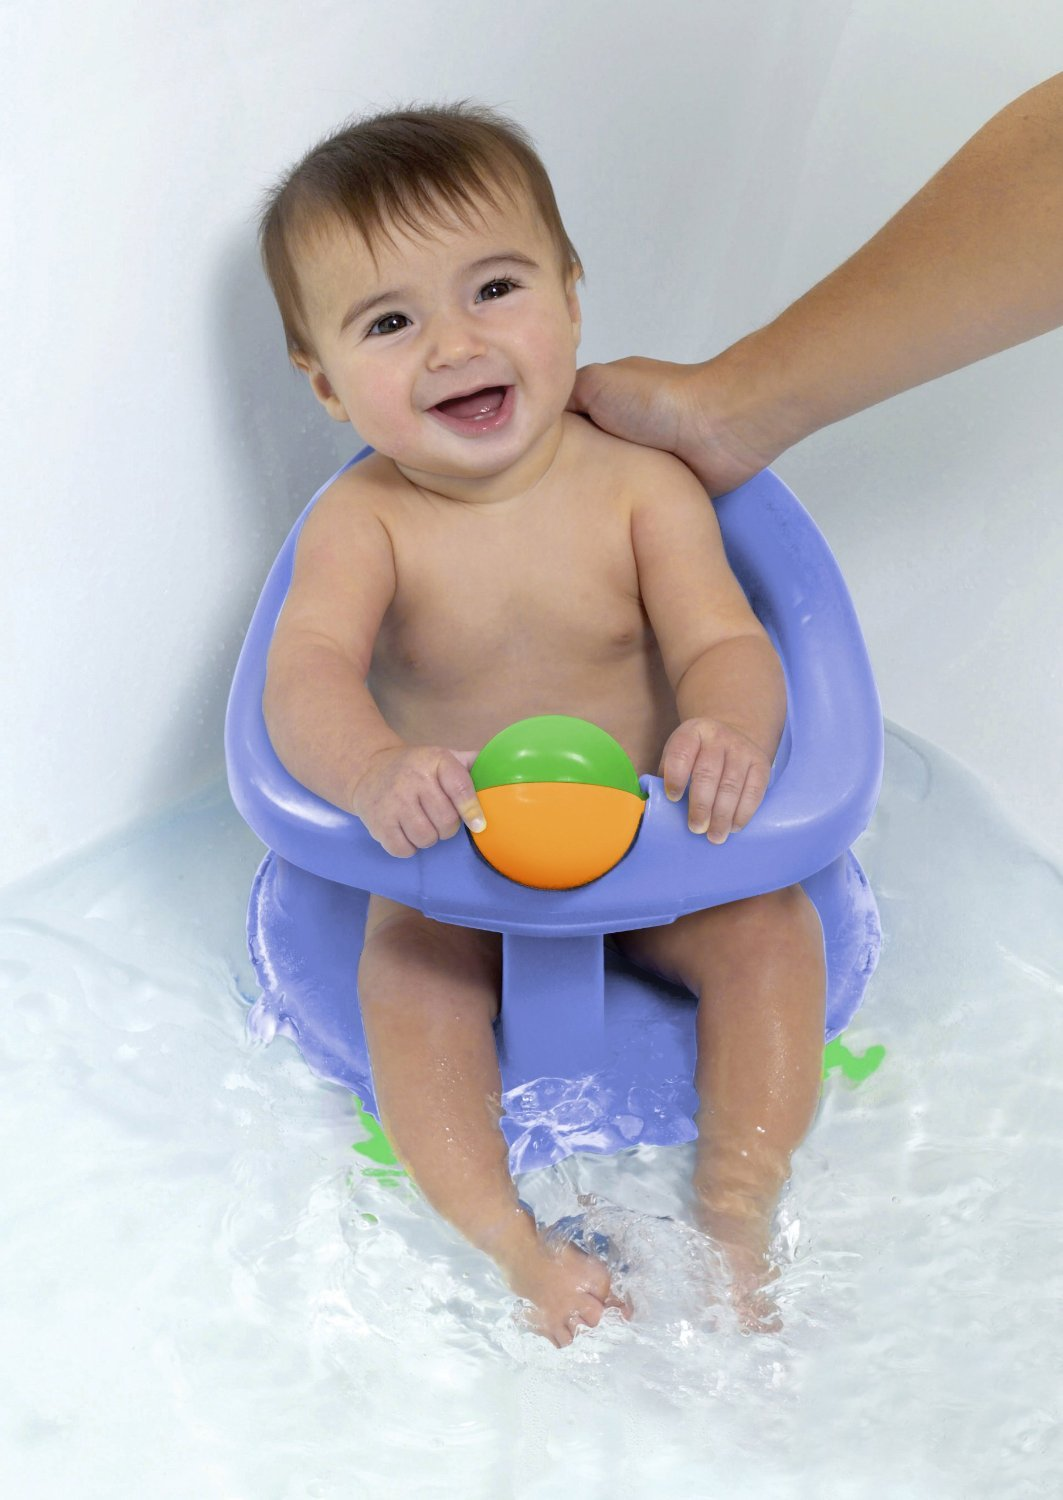 Safety 1st Swivel Bath Seat - Pastel Blue: Amazon.ca: Baby